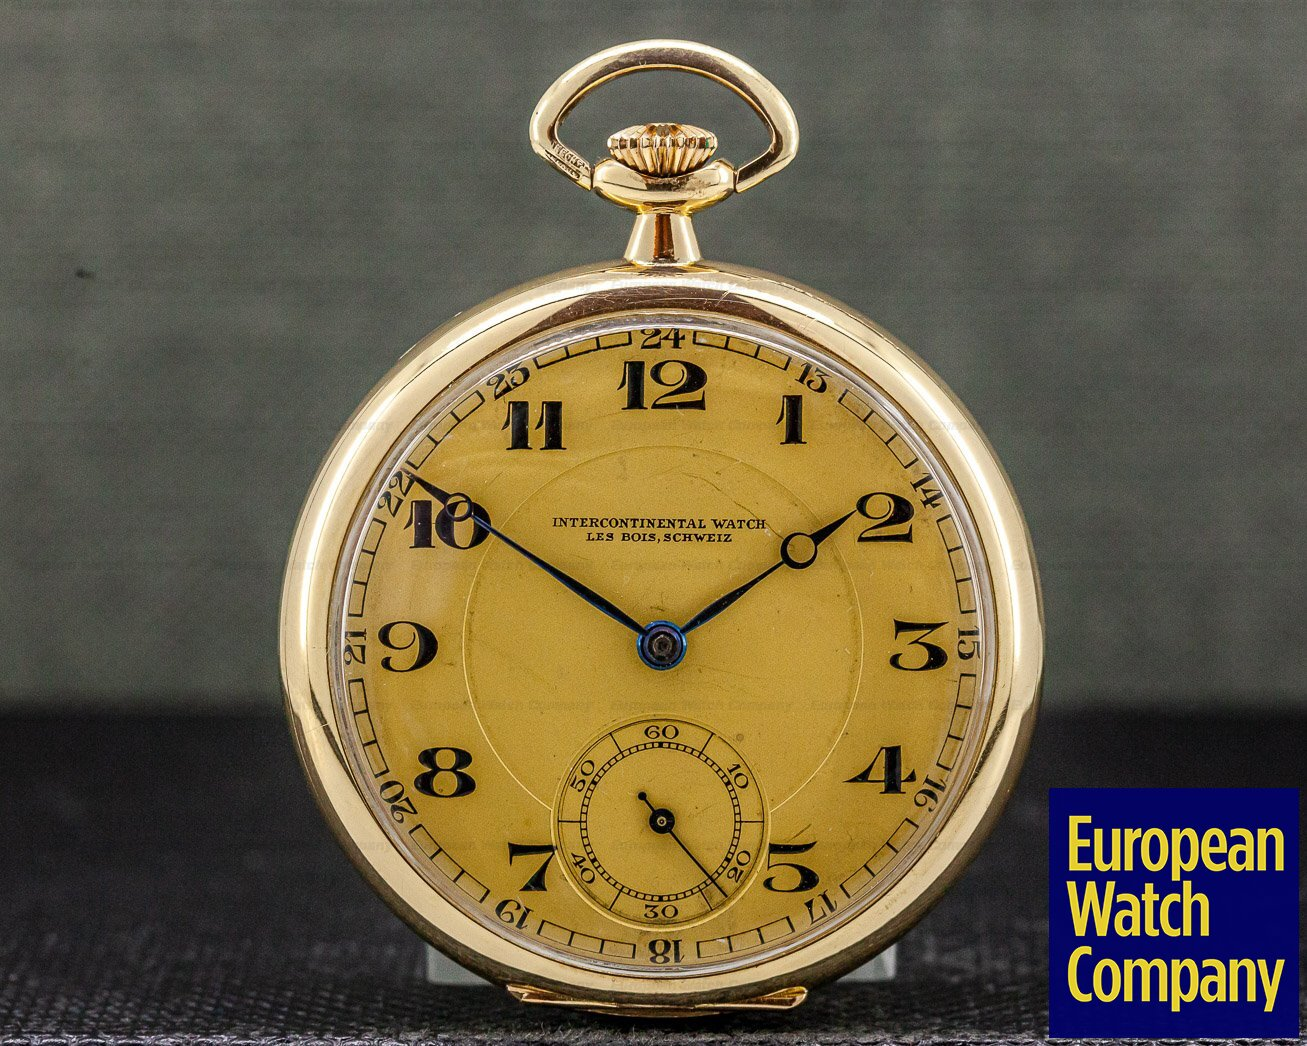 Intercontinental Watch IWC Pocket Watch Intercontinental Watch 14K YG Vintage Pocket Watch 48MM